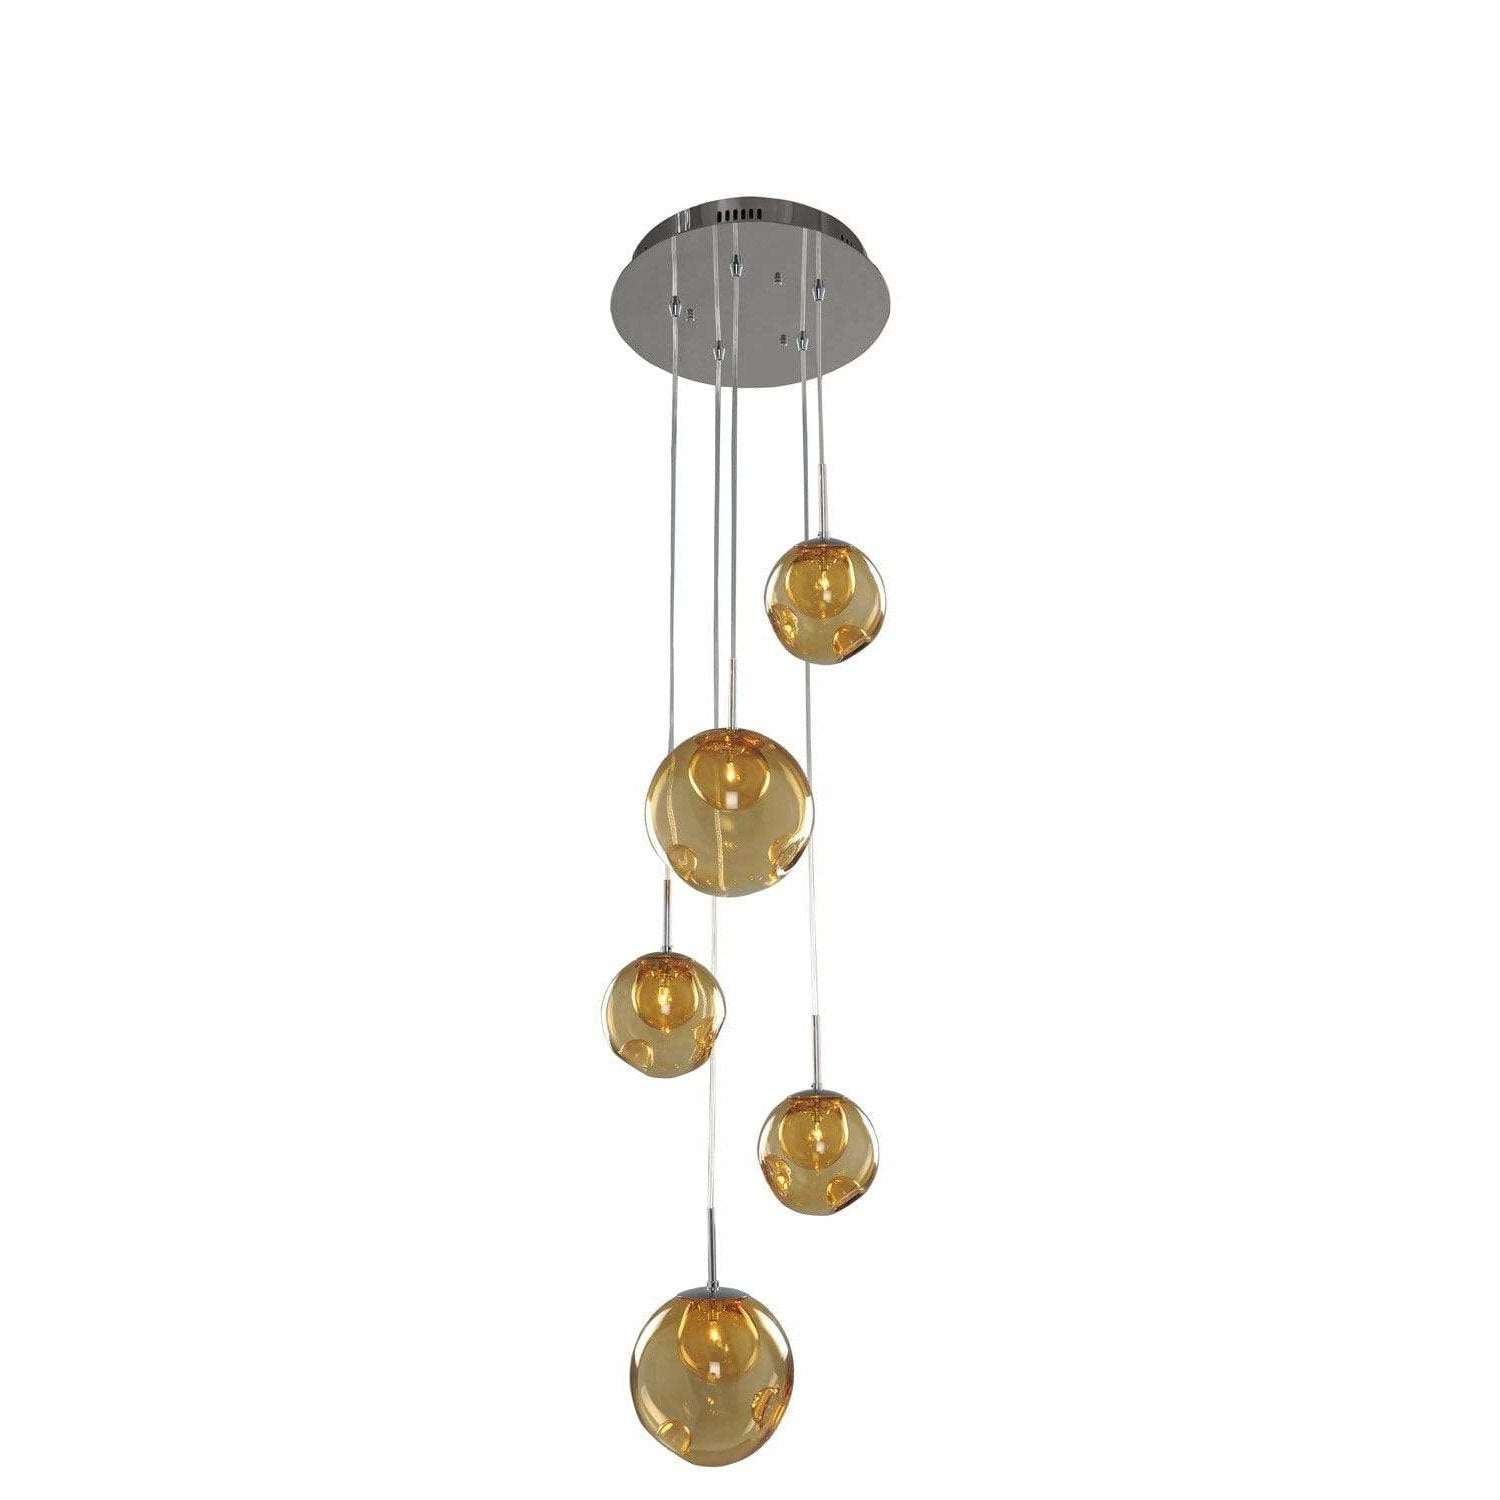 Kalco Lighting Pendants Chrome / Faux Calcite Standard Amber Glass Meteor 5 Light Pendant By Kalco Lighting 309541